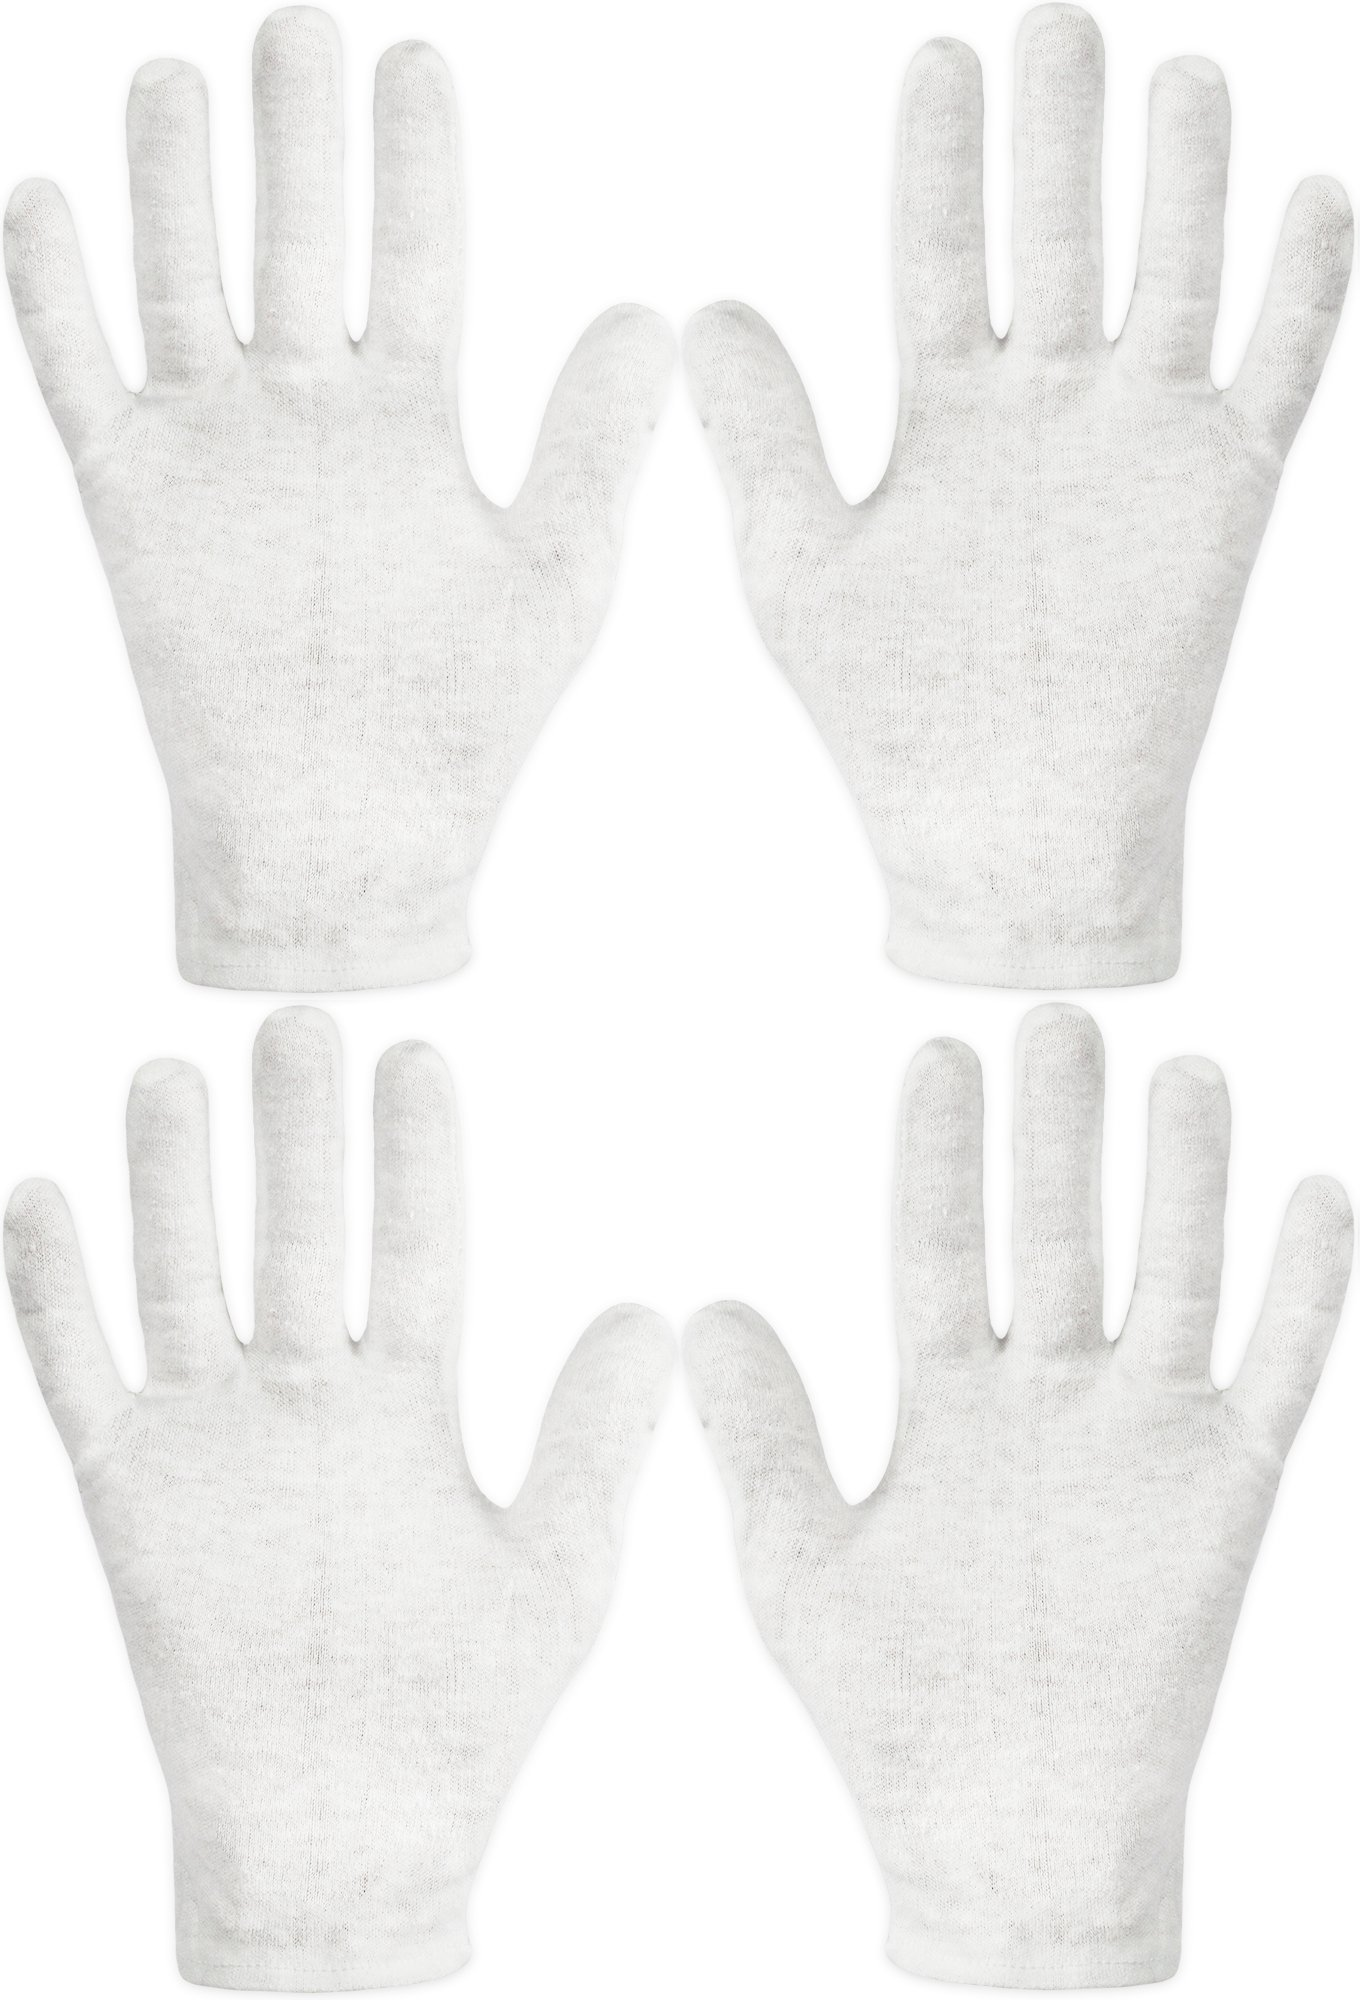 Eurow Cotton Cosmetic Moisturizing Therapeutic Gloves for Dry Hands and Beauty - White 2 Pack